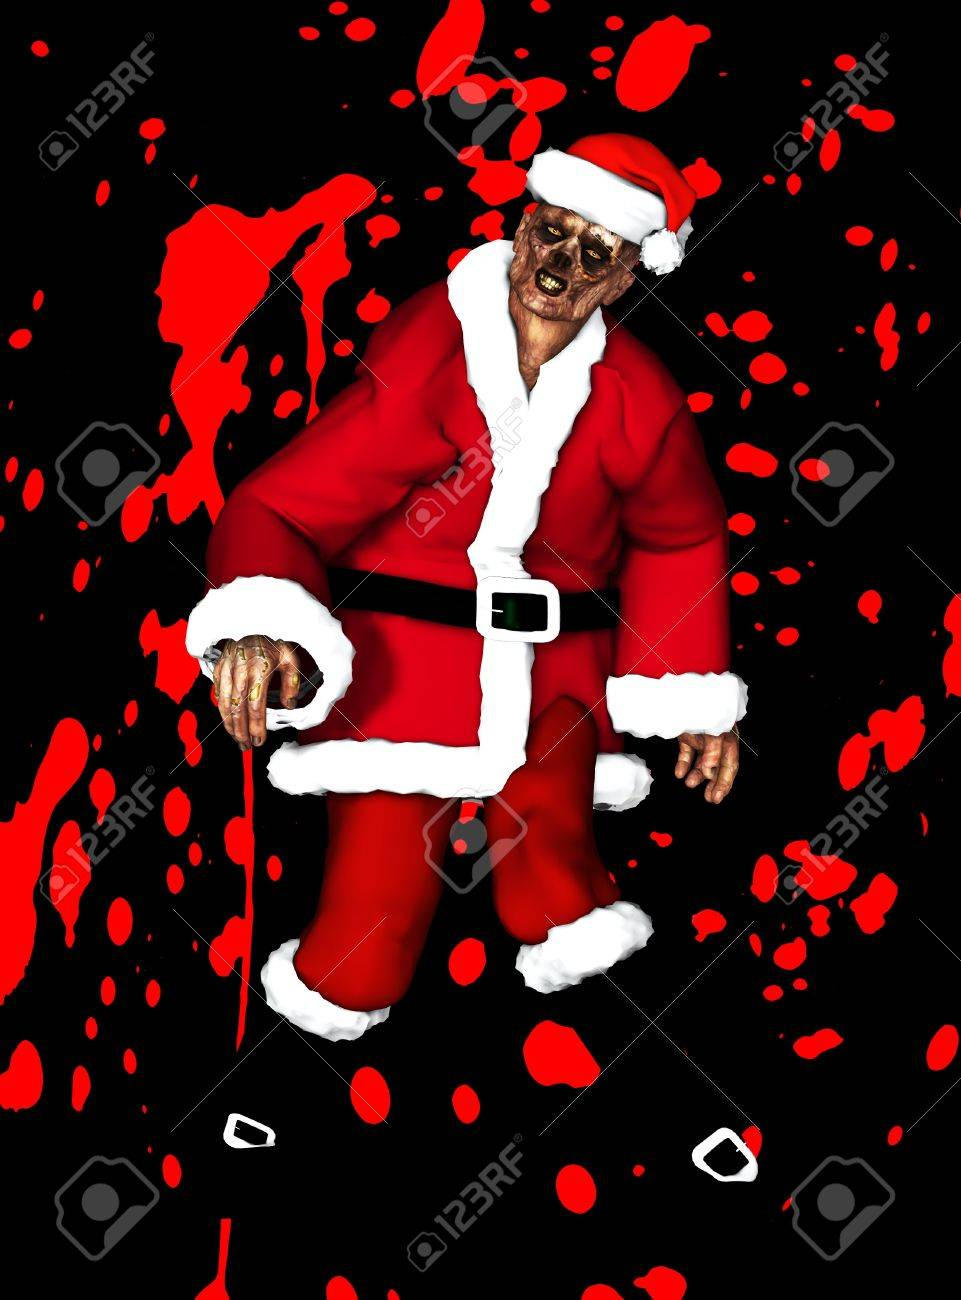 A festive Zombie for the Christmas Holiday Stock Photo - 16879393